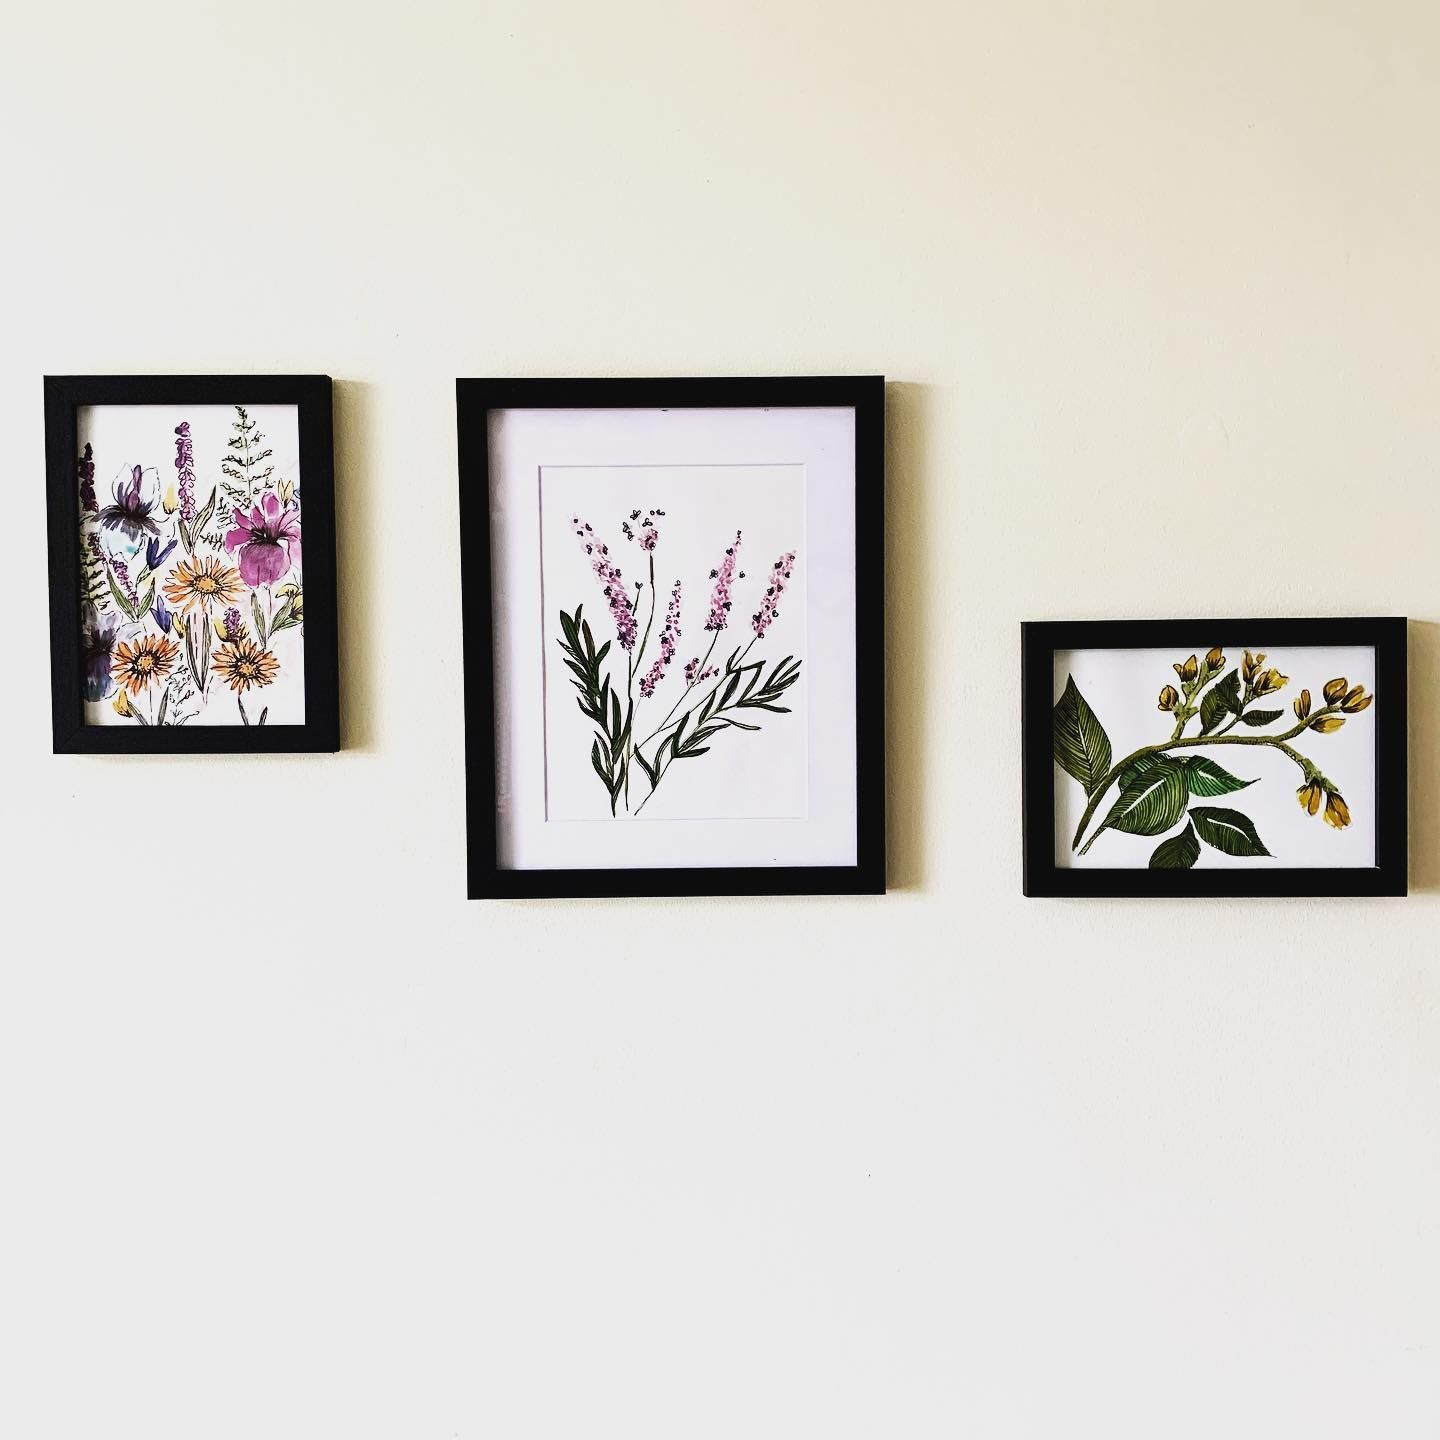 Framing some of my studies today ... trying to make the craft room a little more exciting 🌻 Will eventually have a gallery of work in here I think !  #watercolor #watercolour #watercolourpainting #watercolourillustration #illustration #etsyuk #etsyshop #etsy #floral #flowers #bunchofflowers #blossom #bloom #flower #flowersofinstagram #artistsoninstagram #art #artgallery #gallery #homedecor #home #myhome #lavender #flowerart #flowerdrawing #poppies #pansies #orchid #artoftheday #artofinstagram